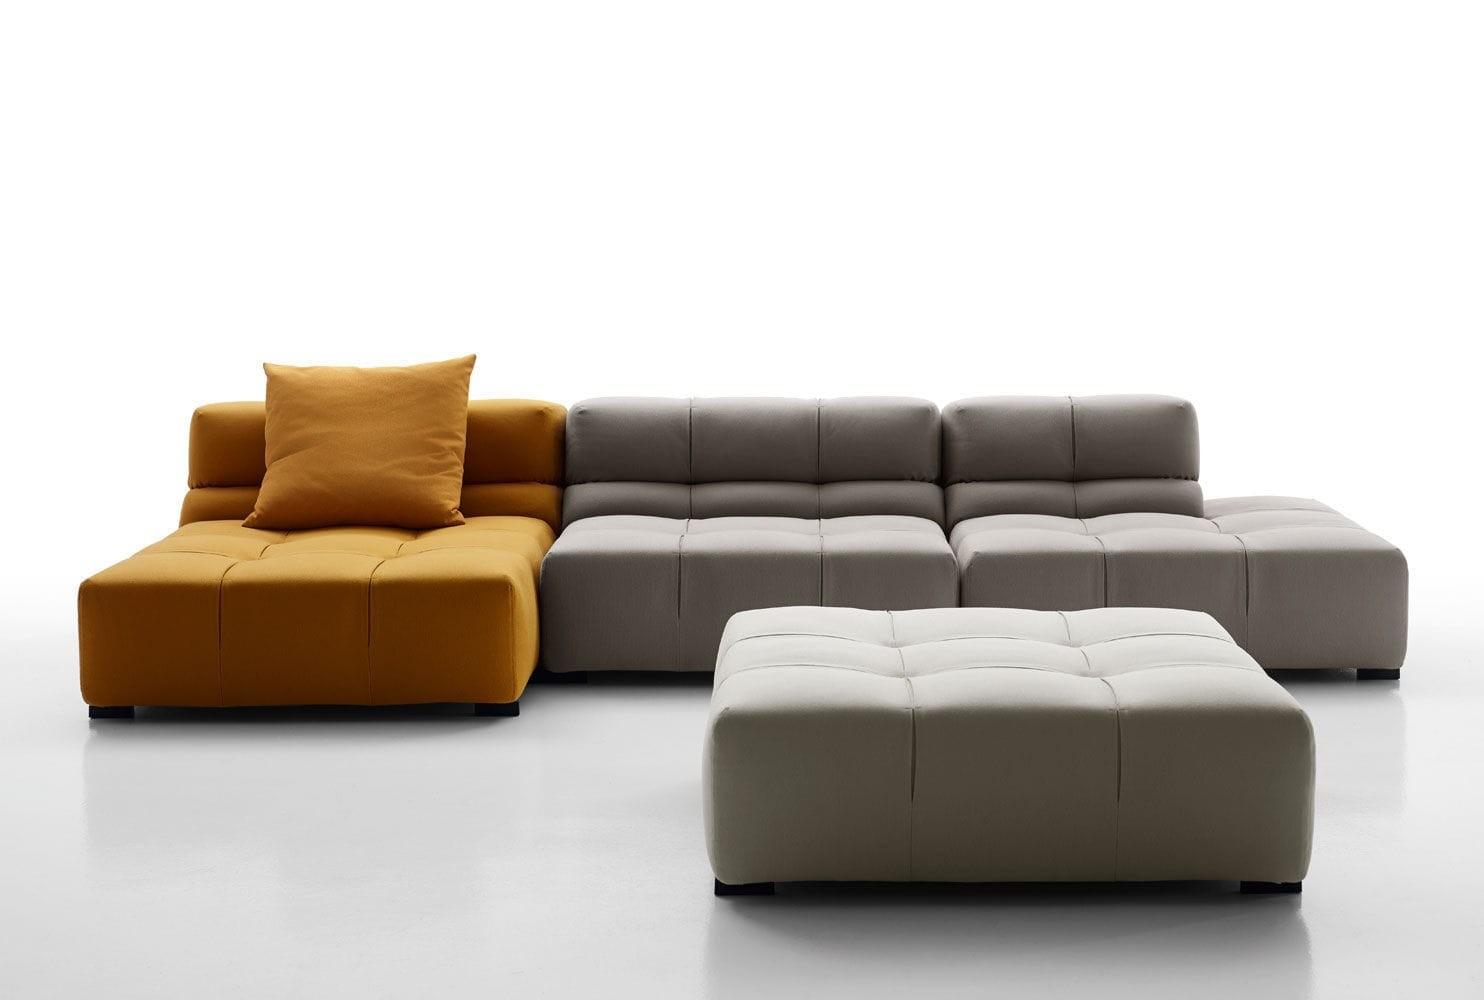 Modular Leather Sofa Best Sofas Ideas Sofascouch